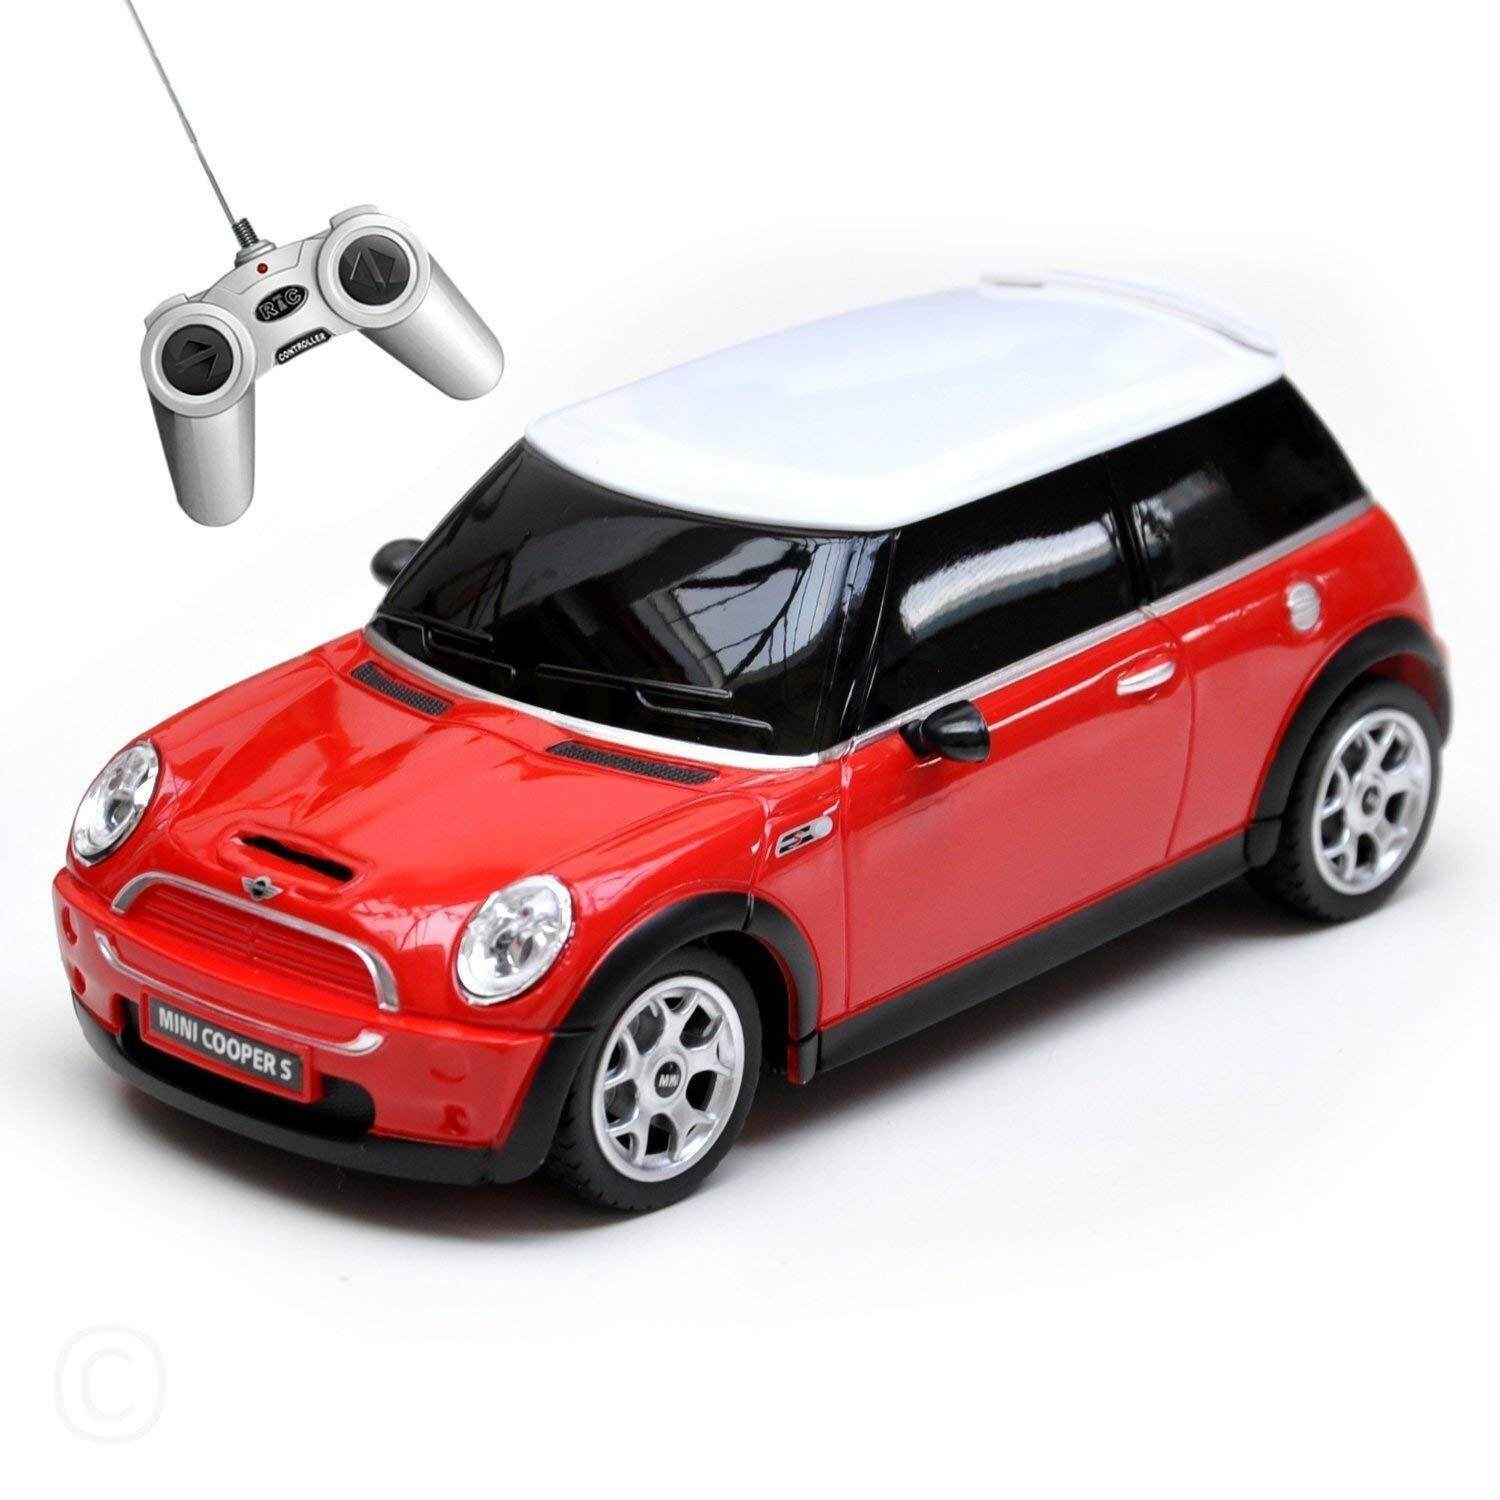 Rastar Remote Control Play Vehicles Price In Malaysia Best